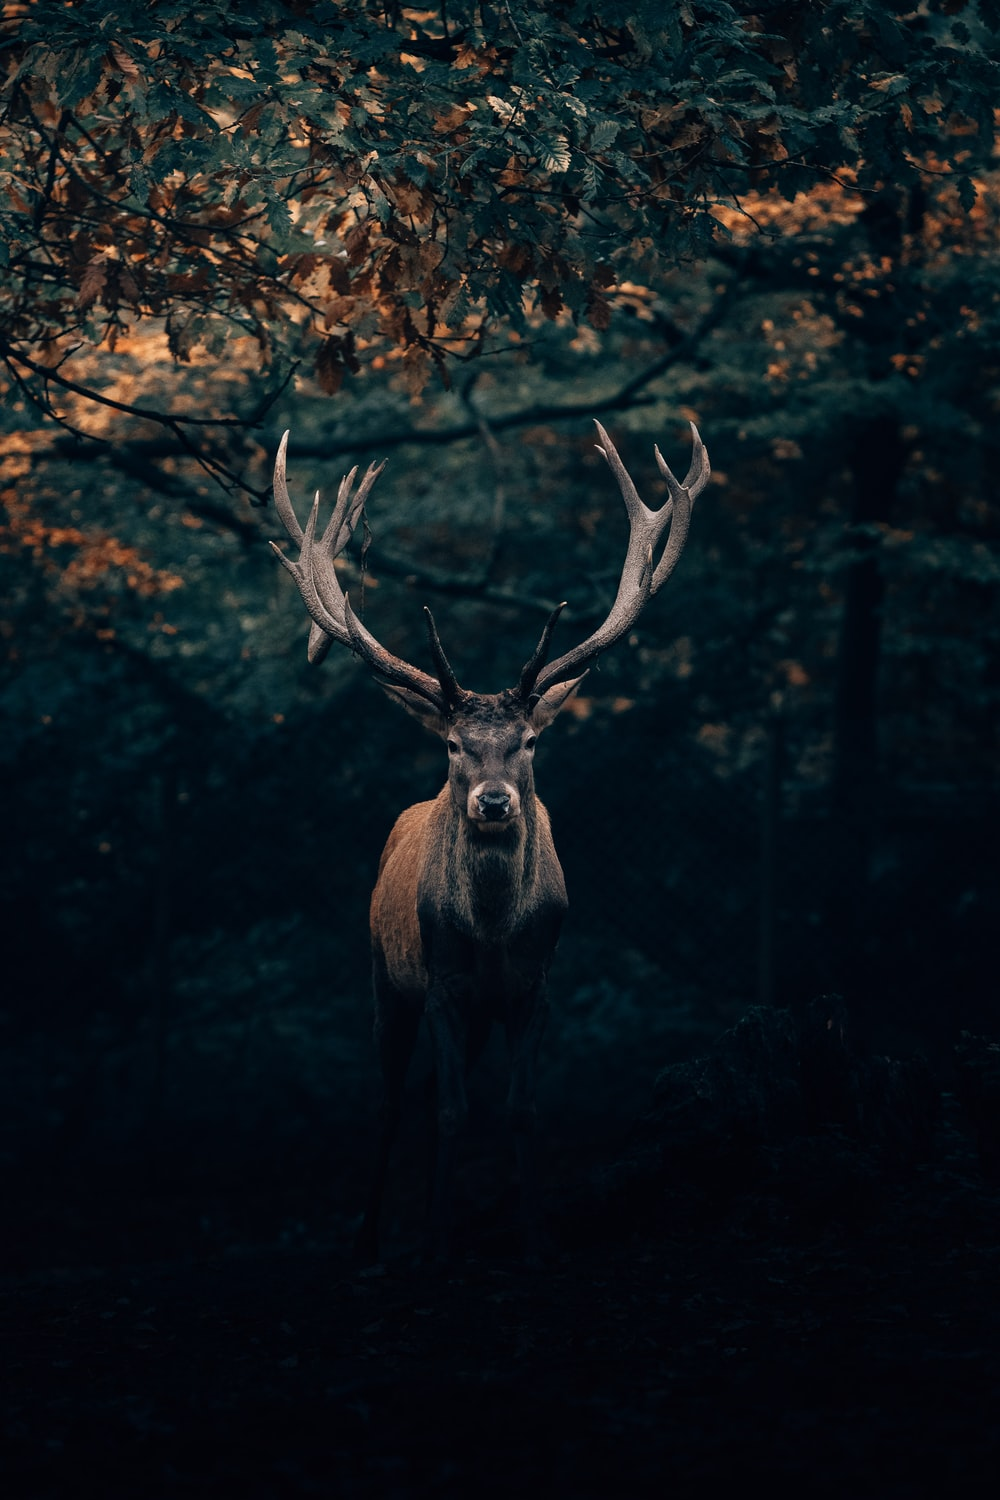 Deer Wallpapers Free Hd Download 500 Hq Unsplash